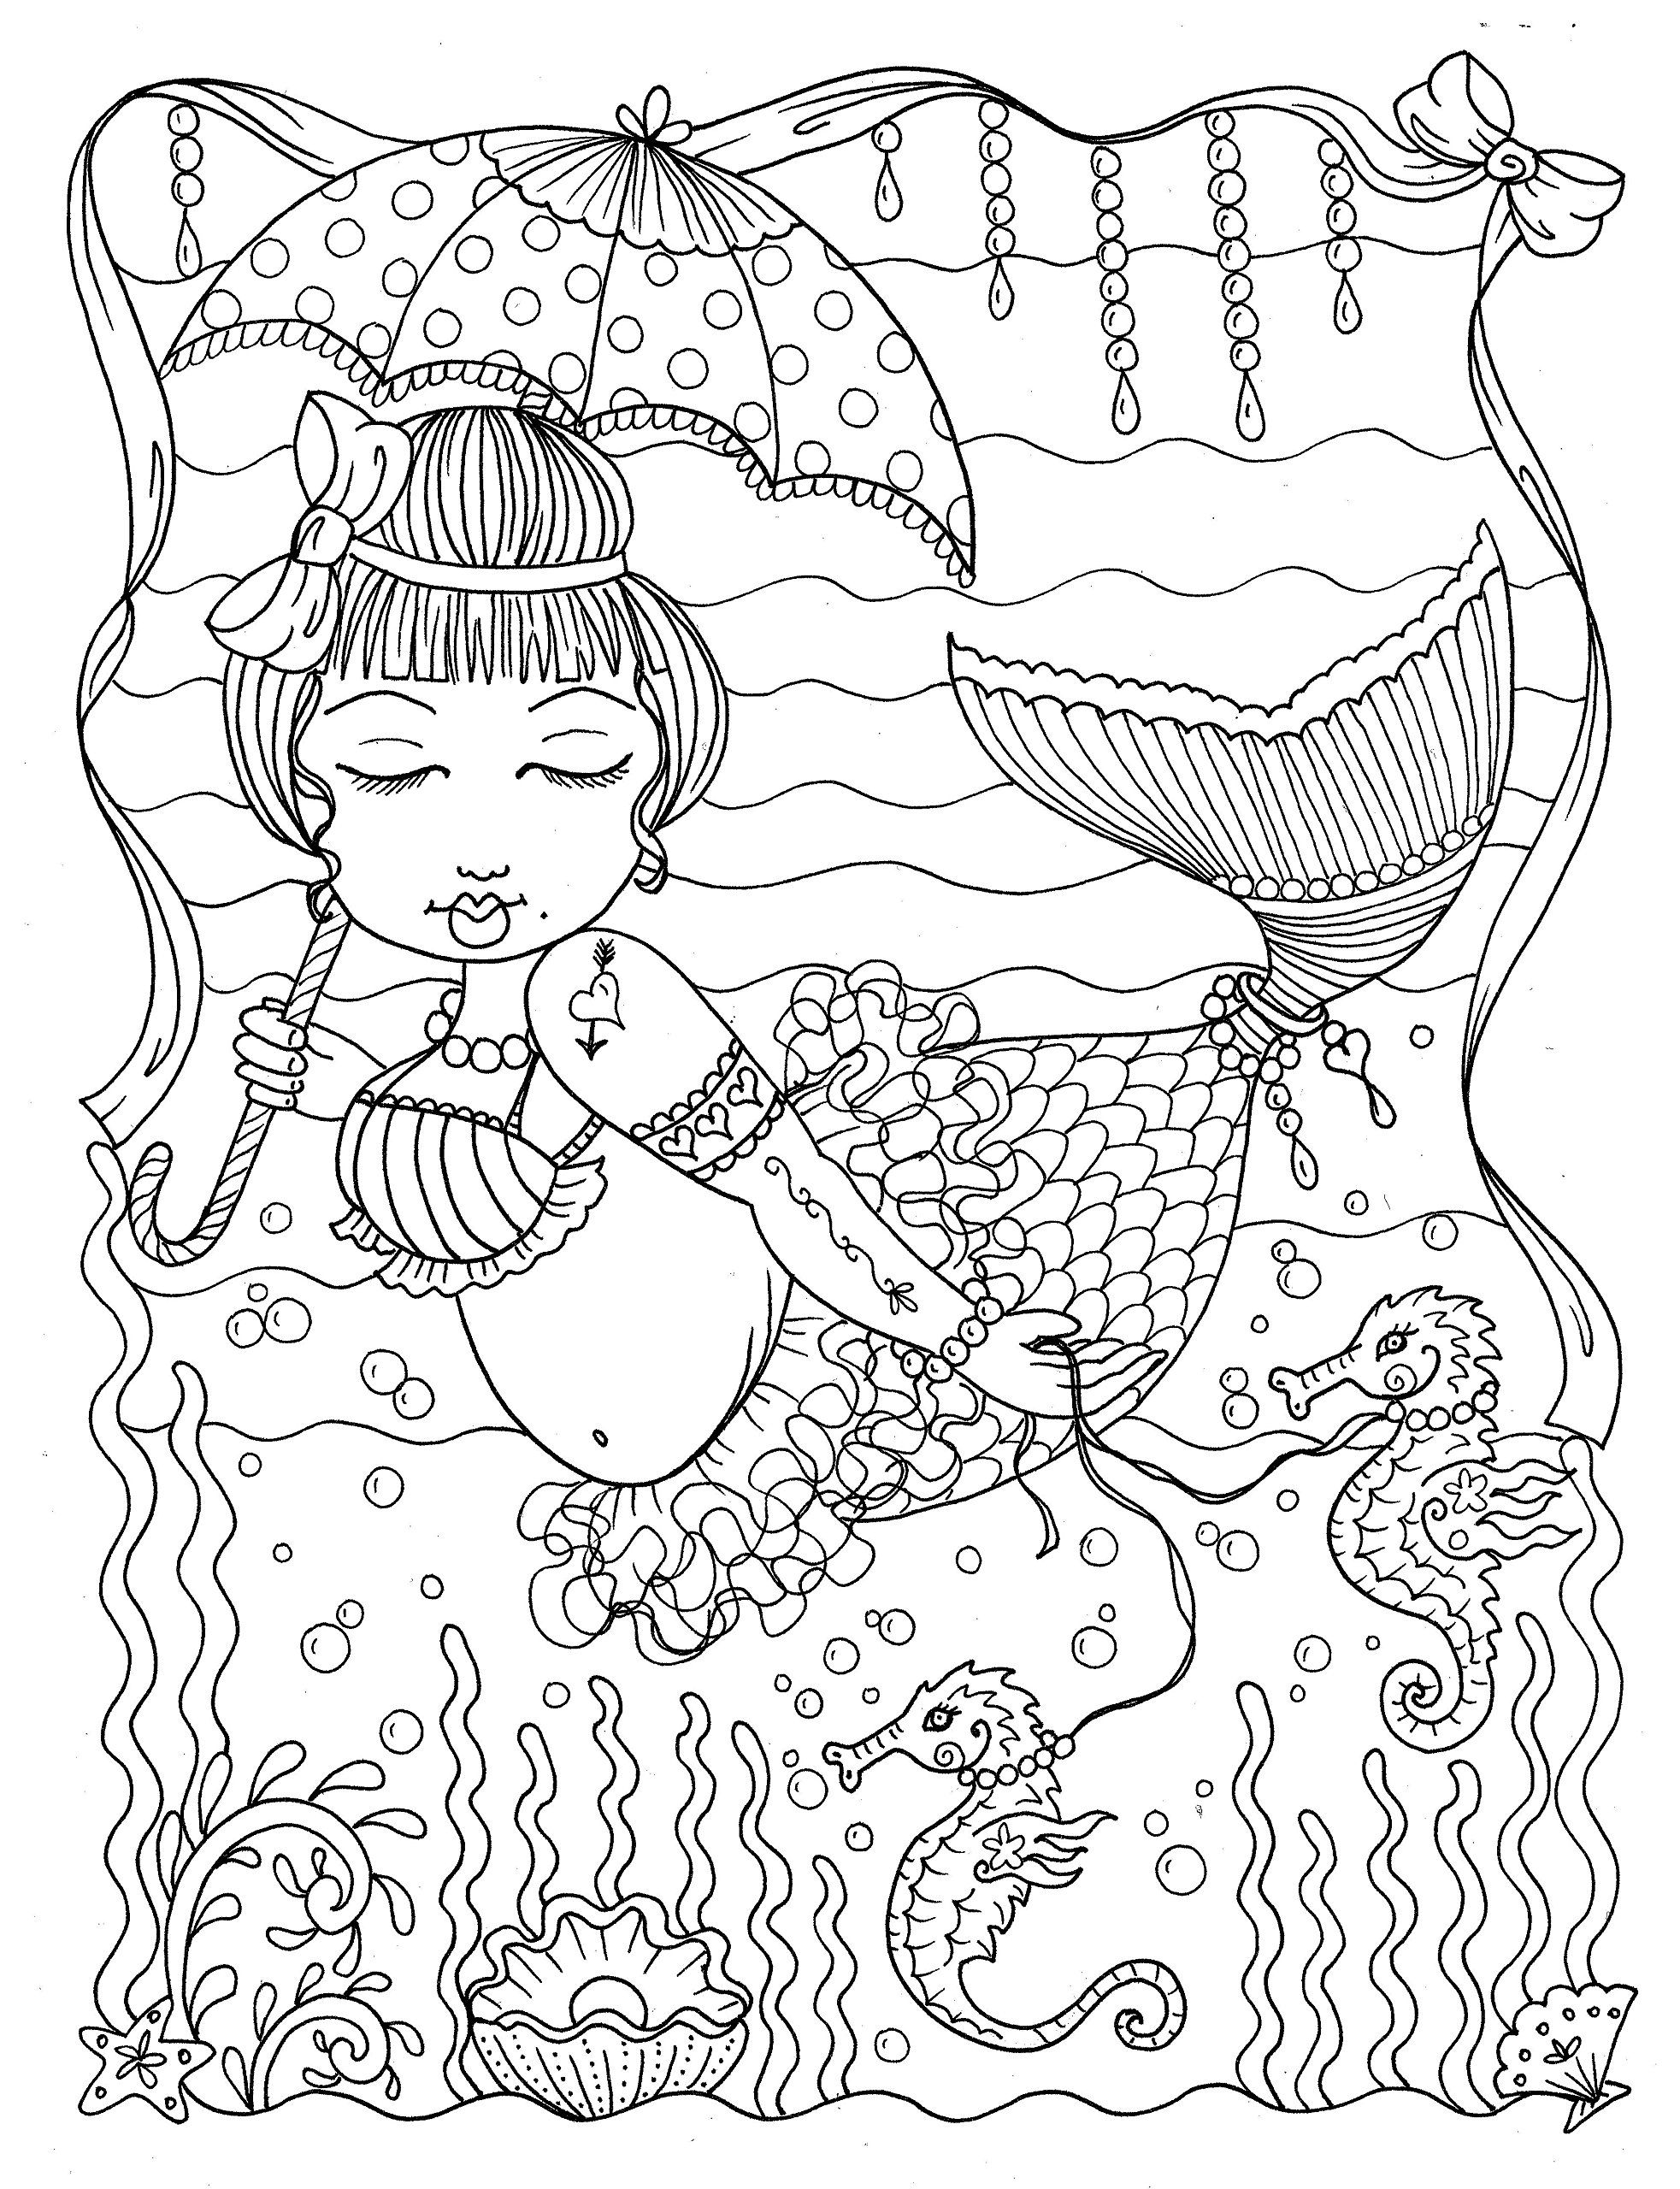 the chubby mermaid coloring book for mermaid lovers not your